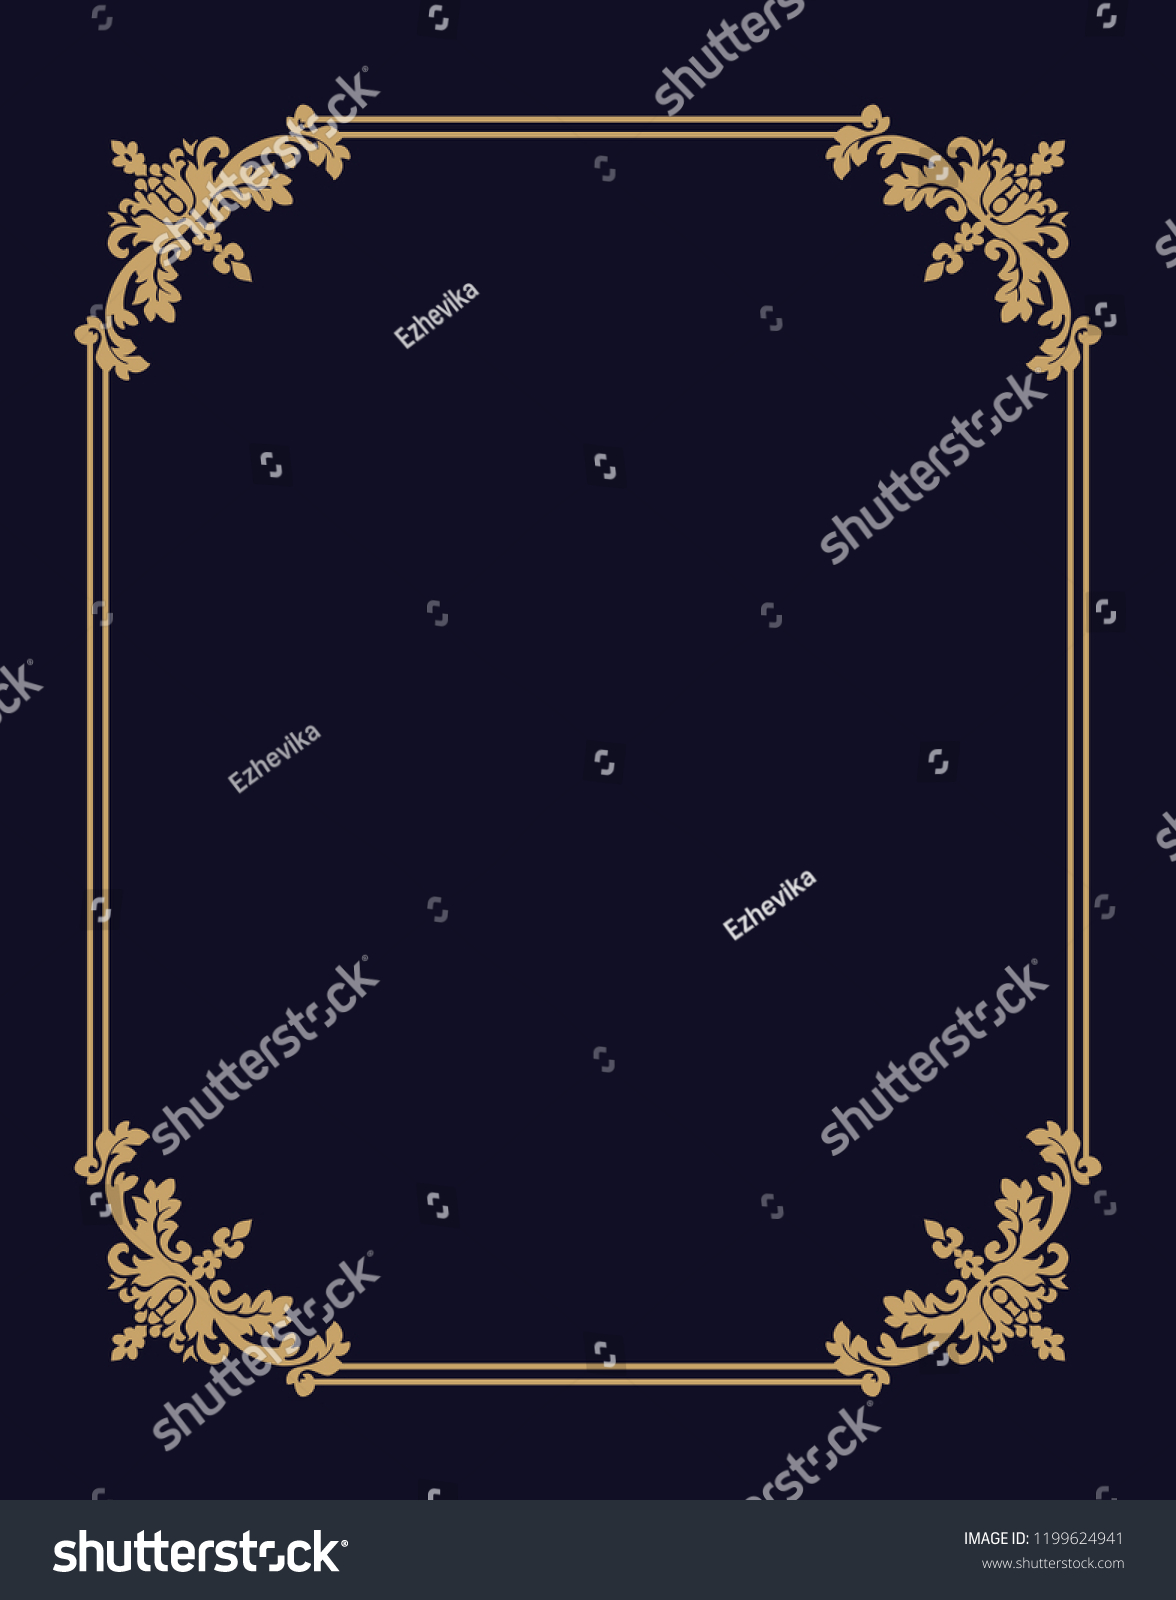 99e4f068ba43 Vector thin gold beautiful decorative vintage frame for your design. Making  menus, certificates,